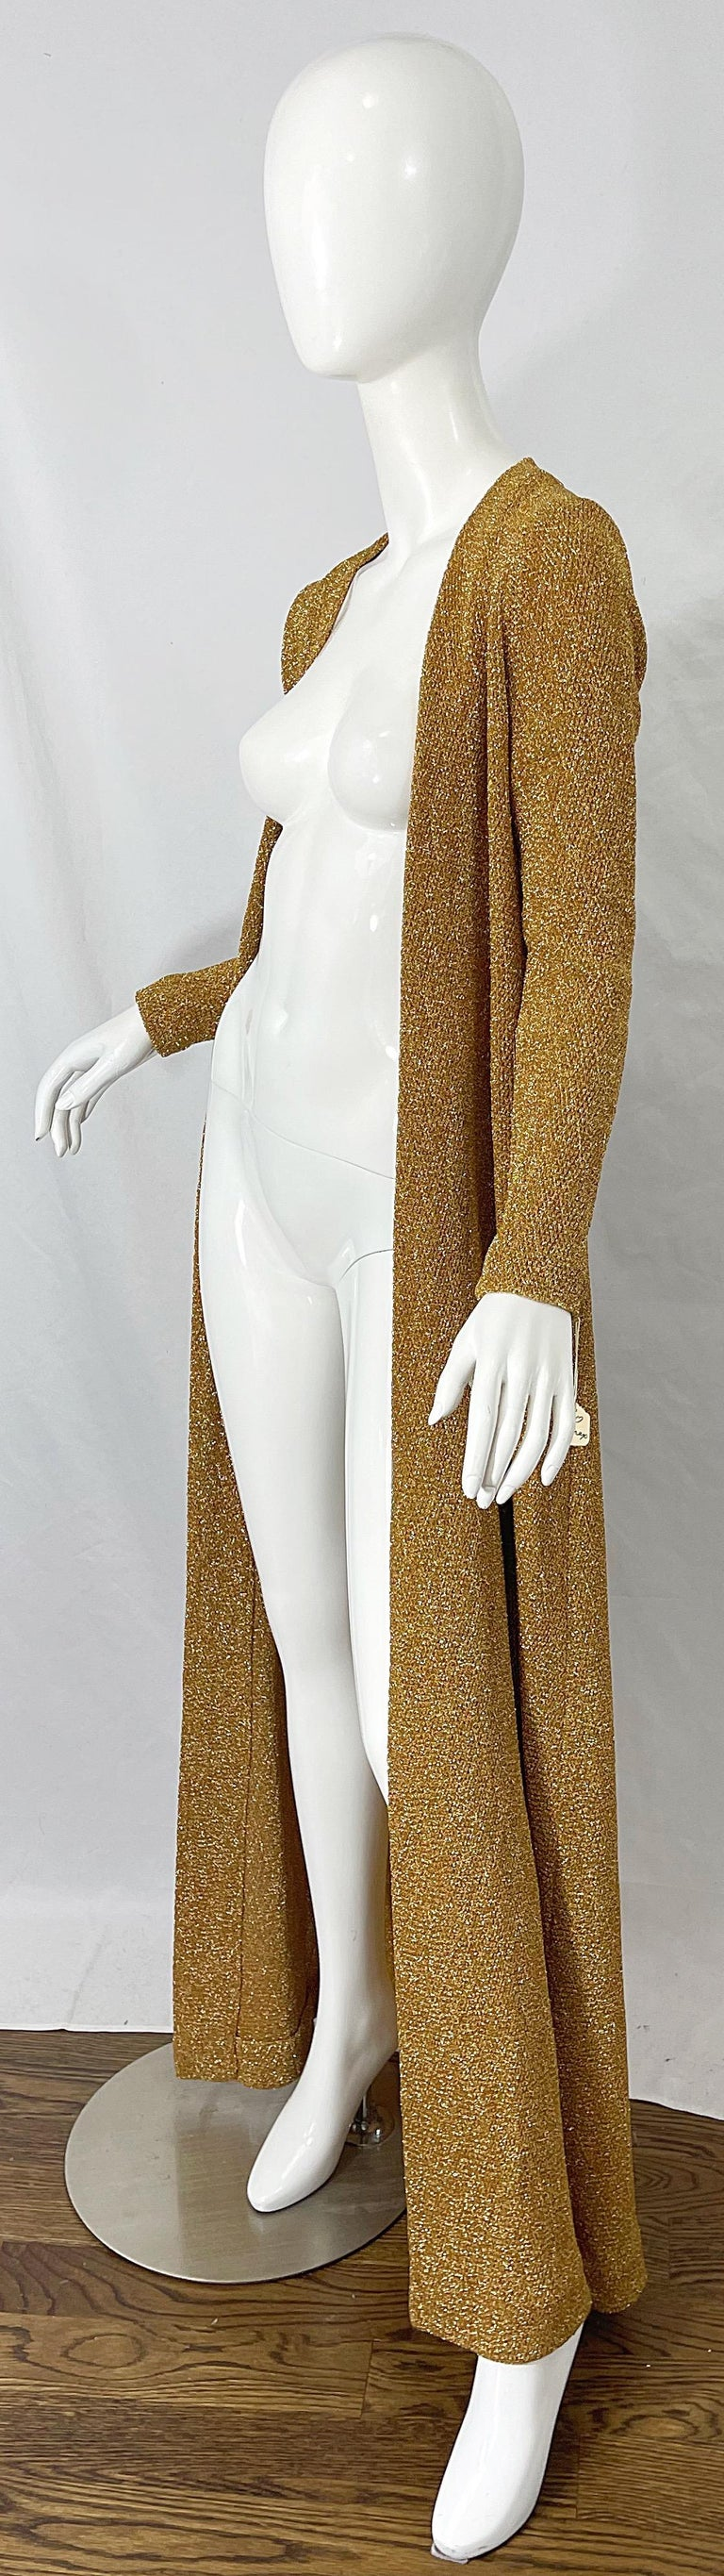 1970s Halston NWT Gold + Silver 70s Vintage Lurex Gown + Duster Cardigan For Sale 12